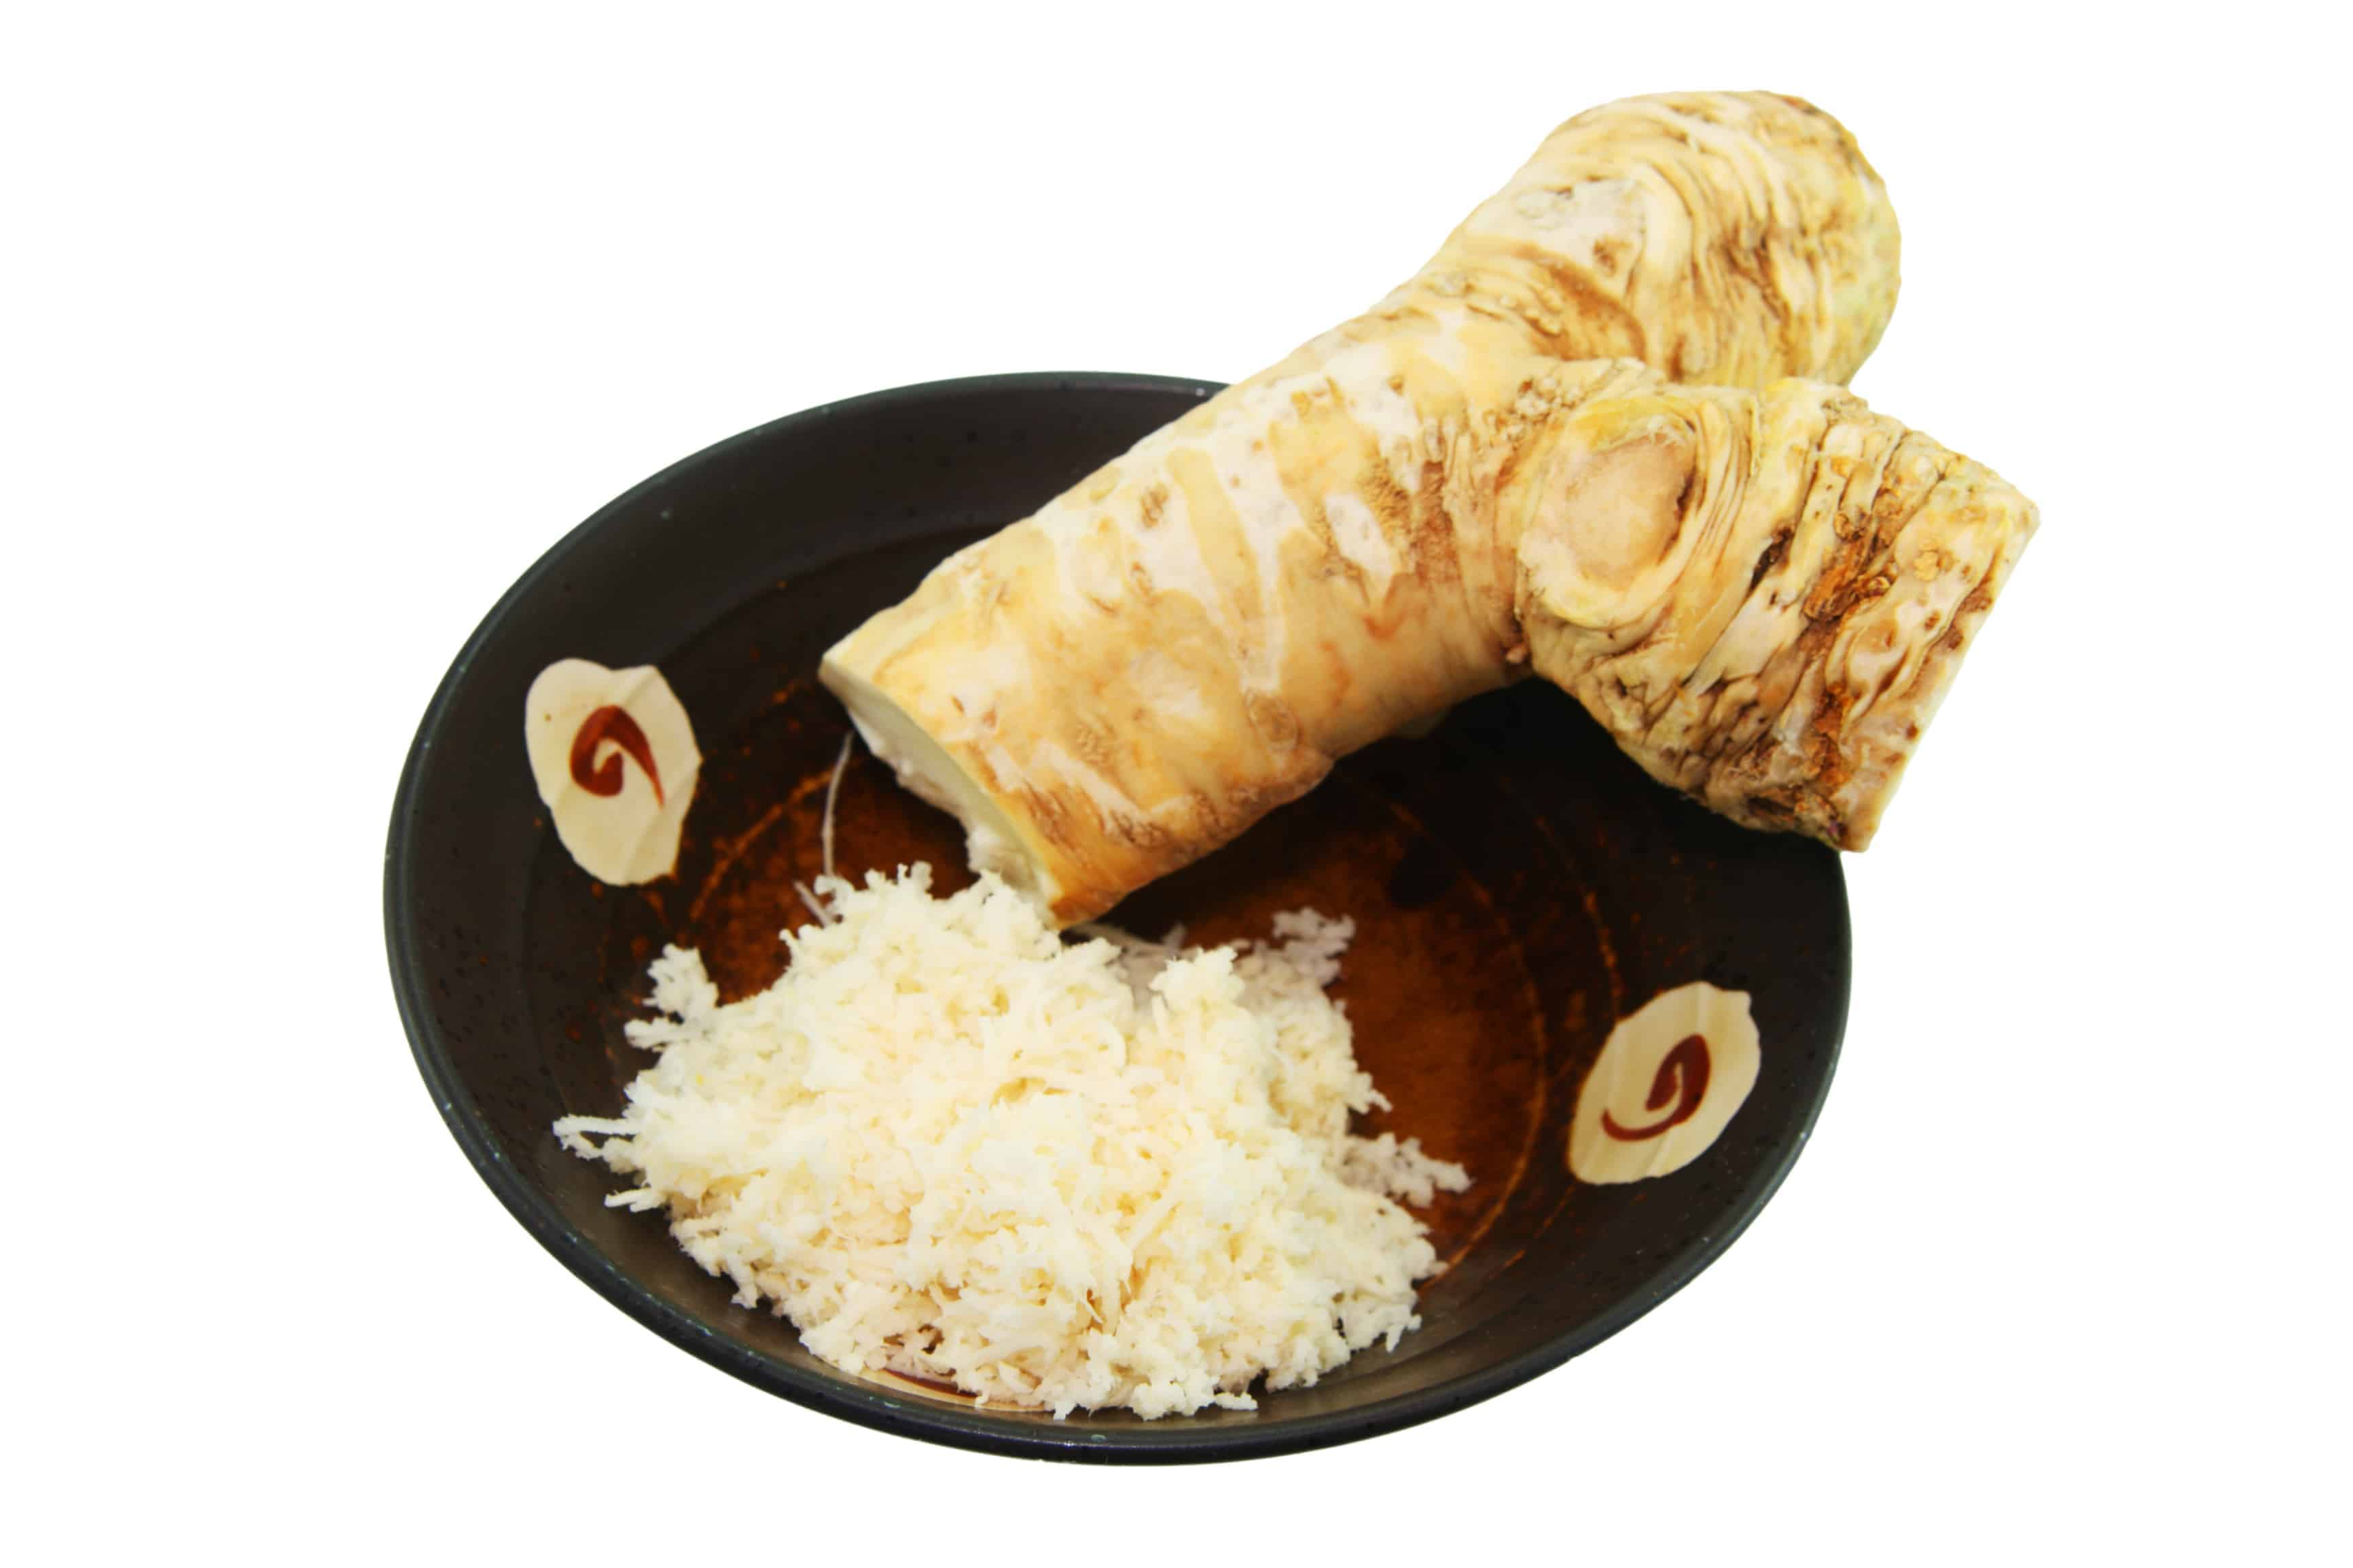 Check out this rad root – Horseradish!